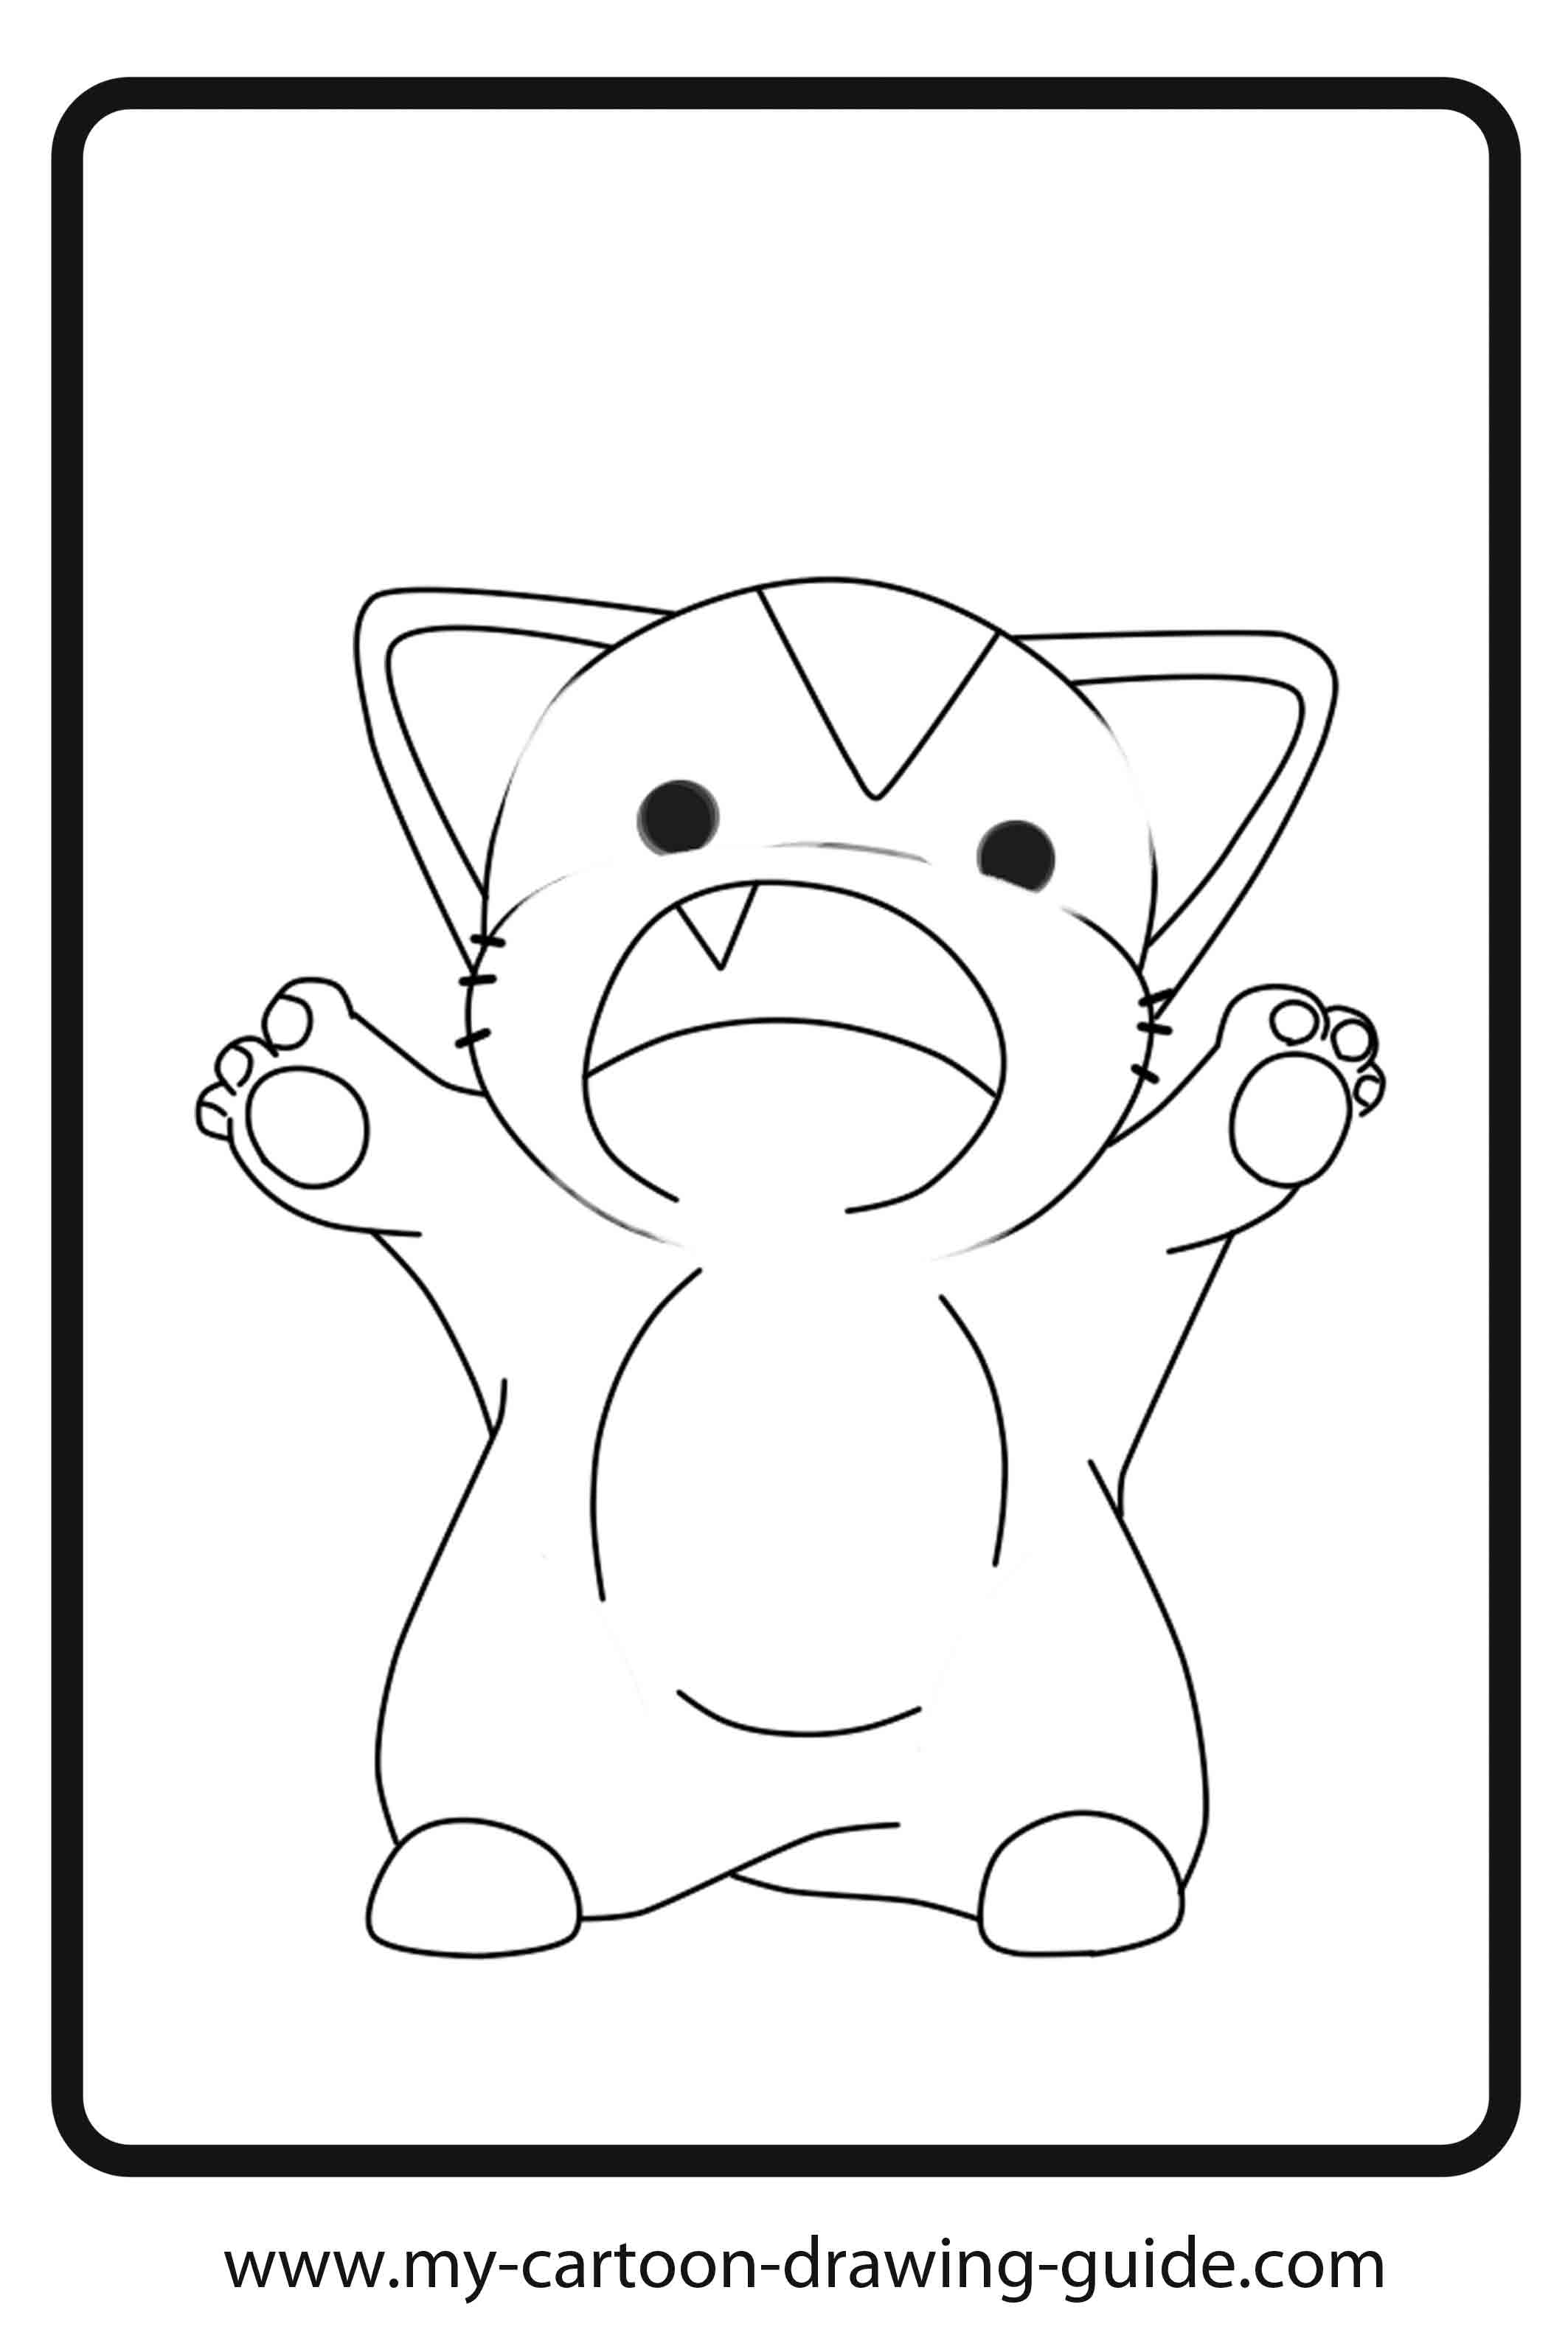 animal girl coloring pages cute baby cartoon animals coloring pages coloring home girl animal pages coloring